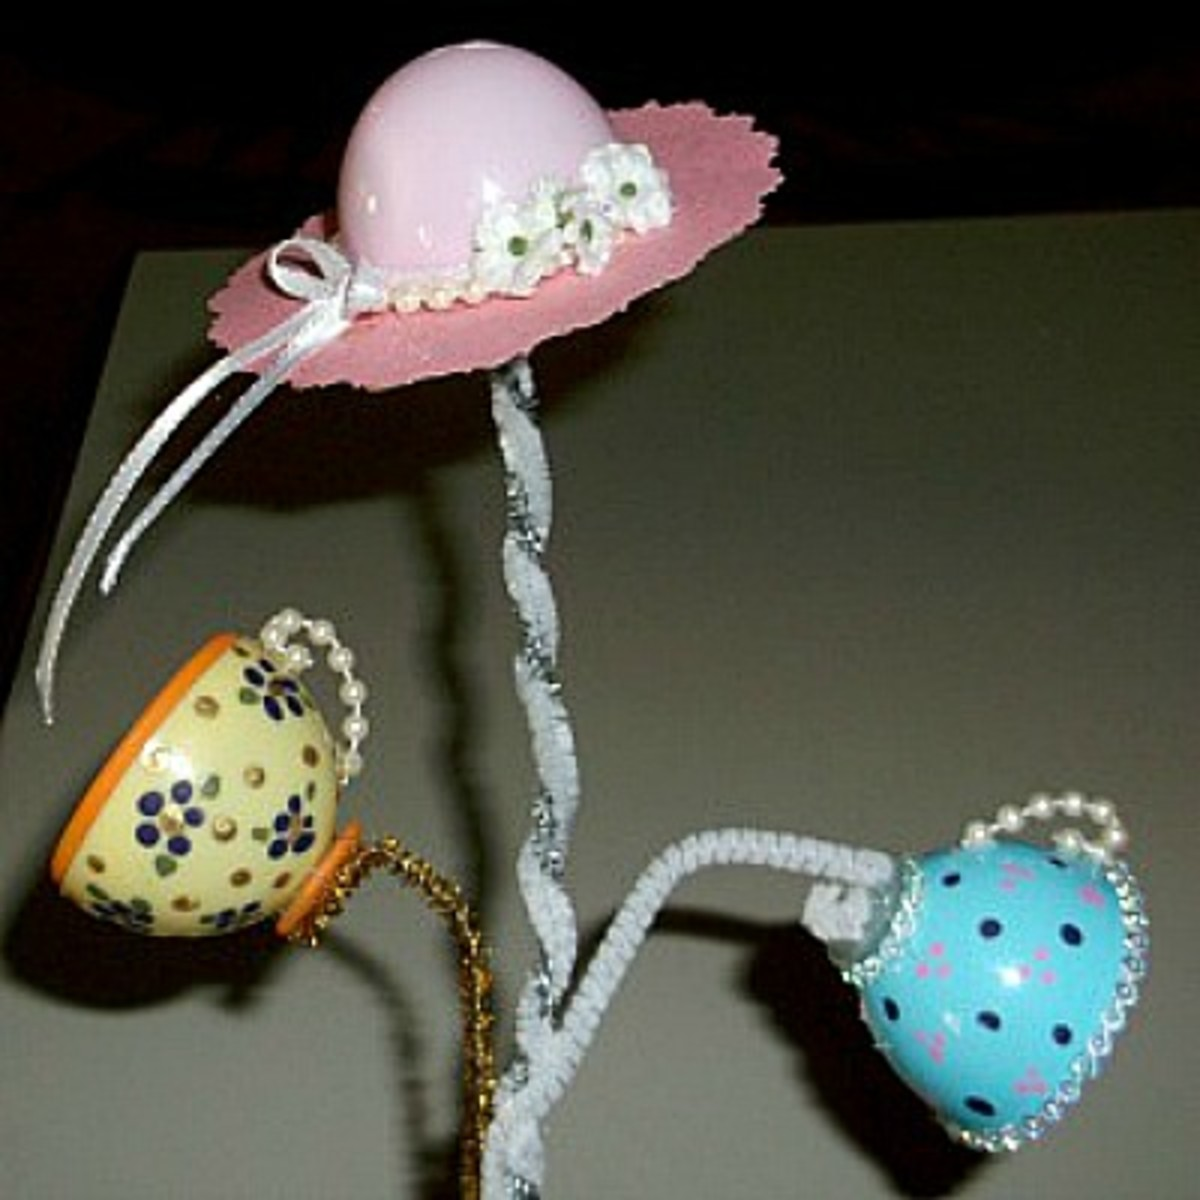 making-teacups-and-hats-using-plastic-eggs